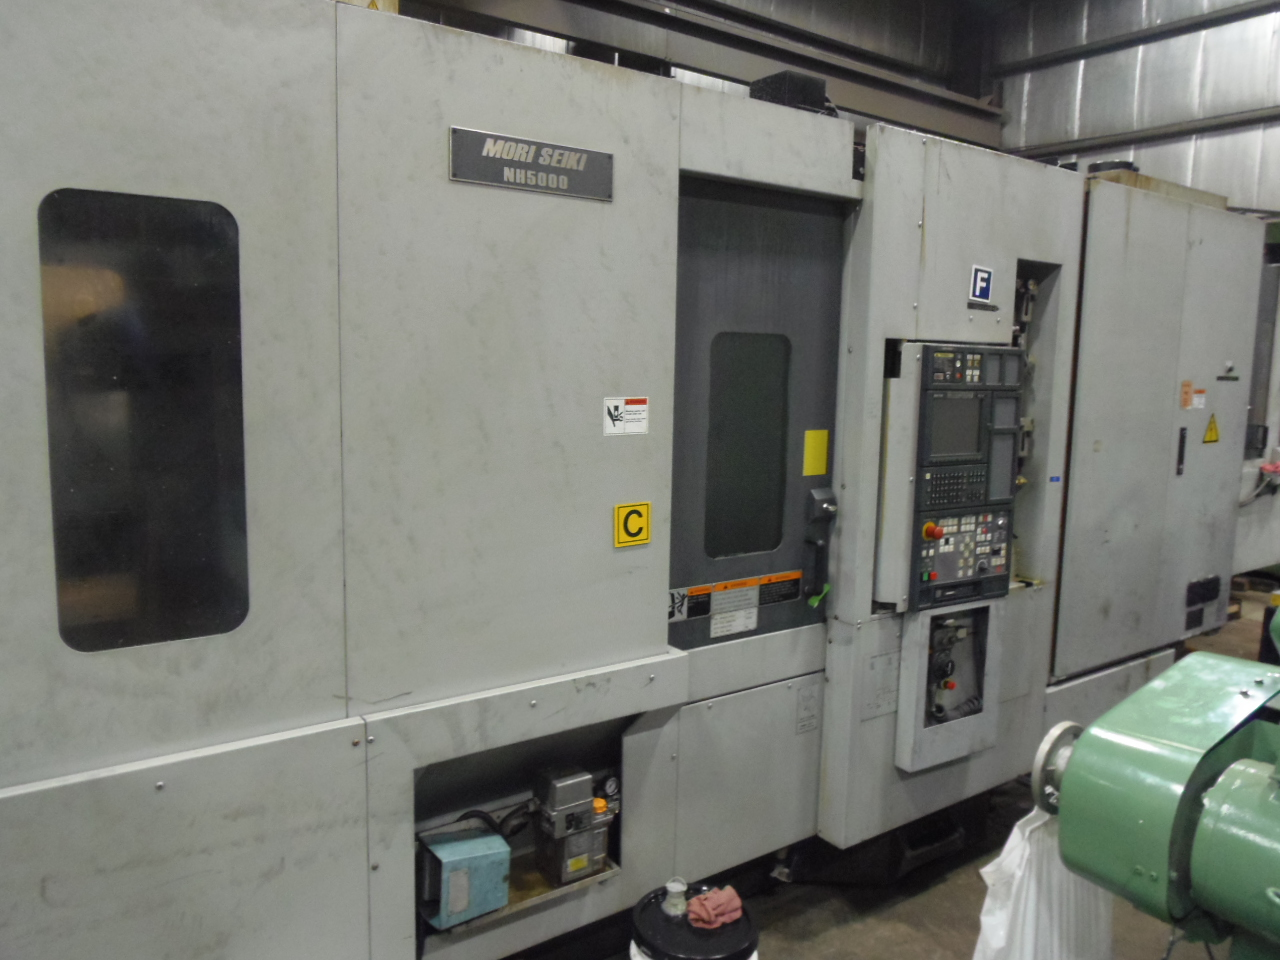 NH5000/40 MORI SEIKI, WITH COOLANT SYSTEM, 2003, THRU SPINDLE COOLANT, 1 DEGREE, MSC501 WITH MAPPS, 60 ATC, 40 TAPER, 2 PALLET, 14,000 RPM